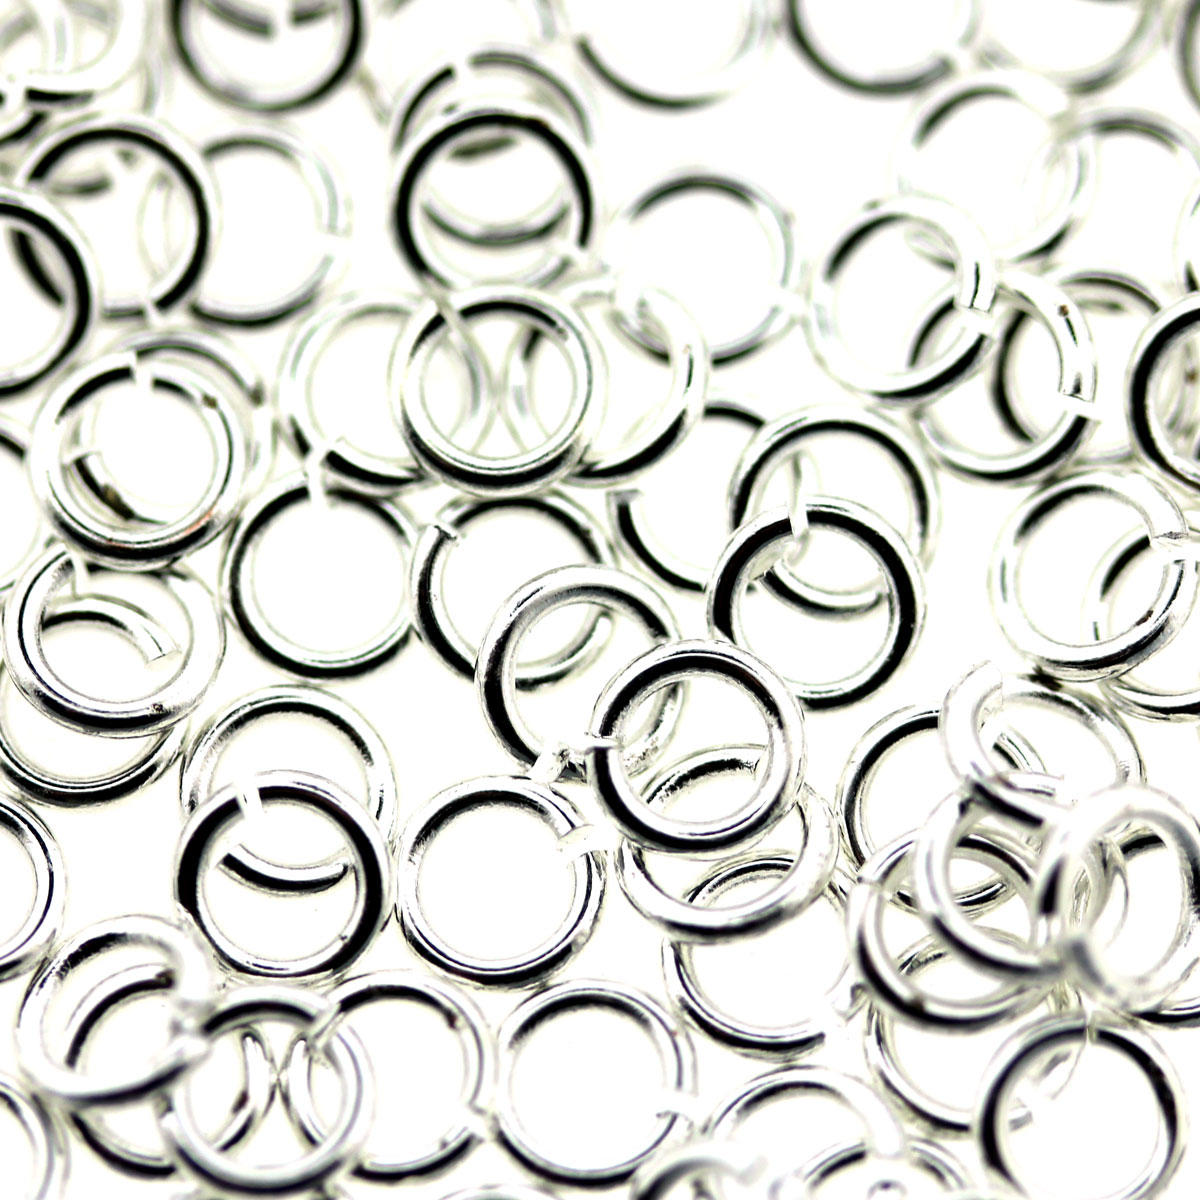 Silver Jump-rings